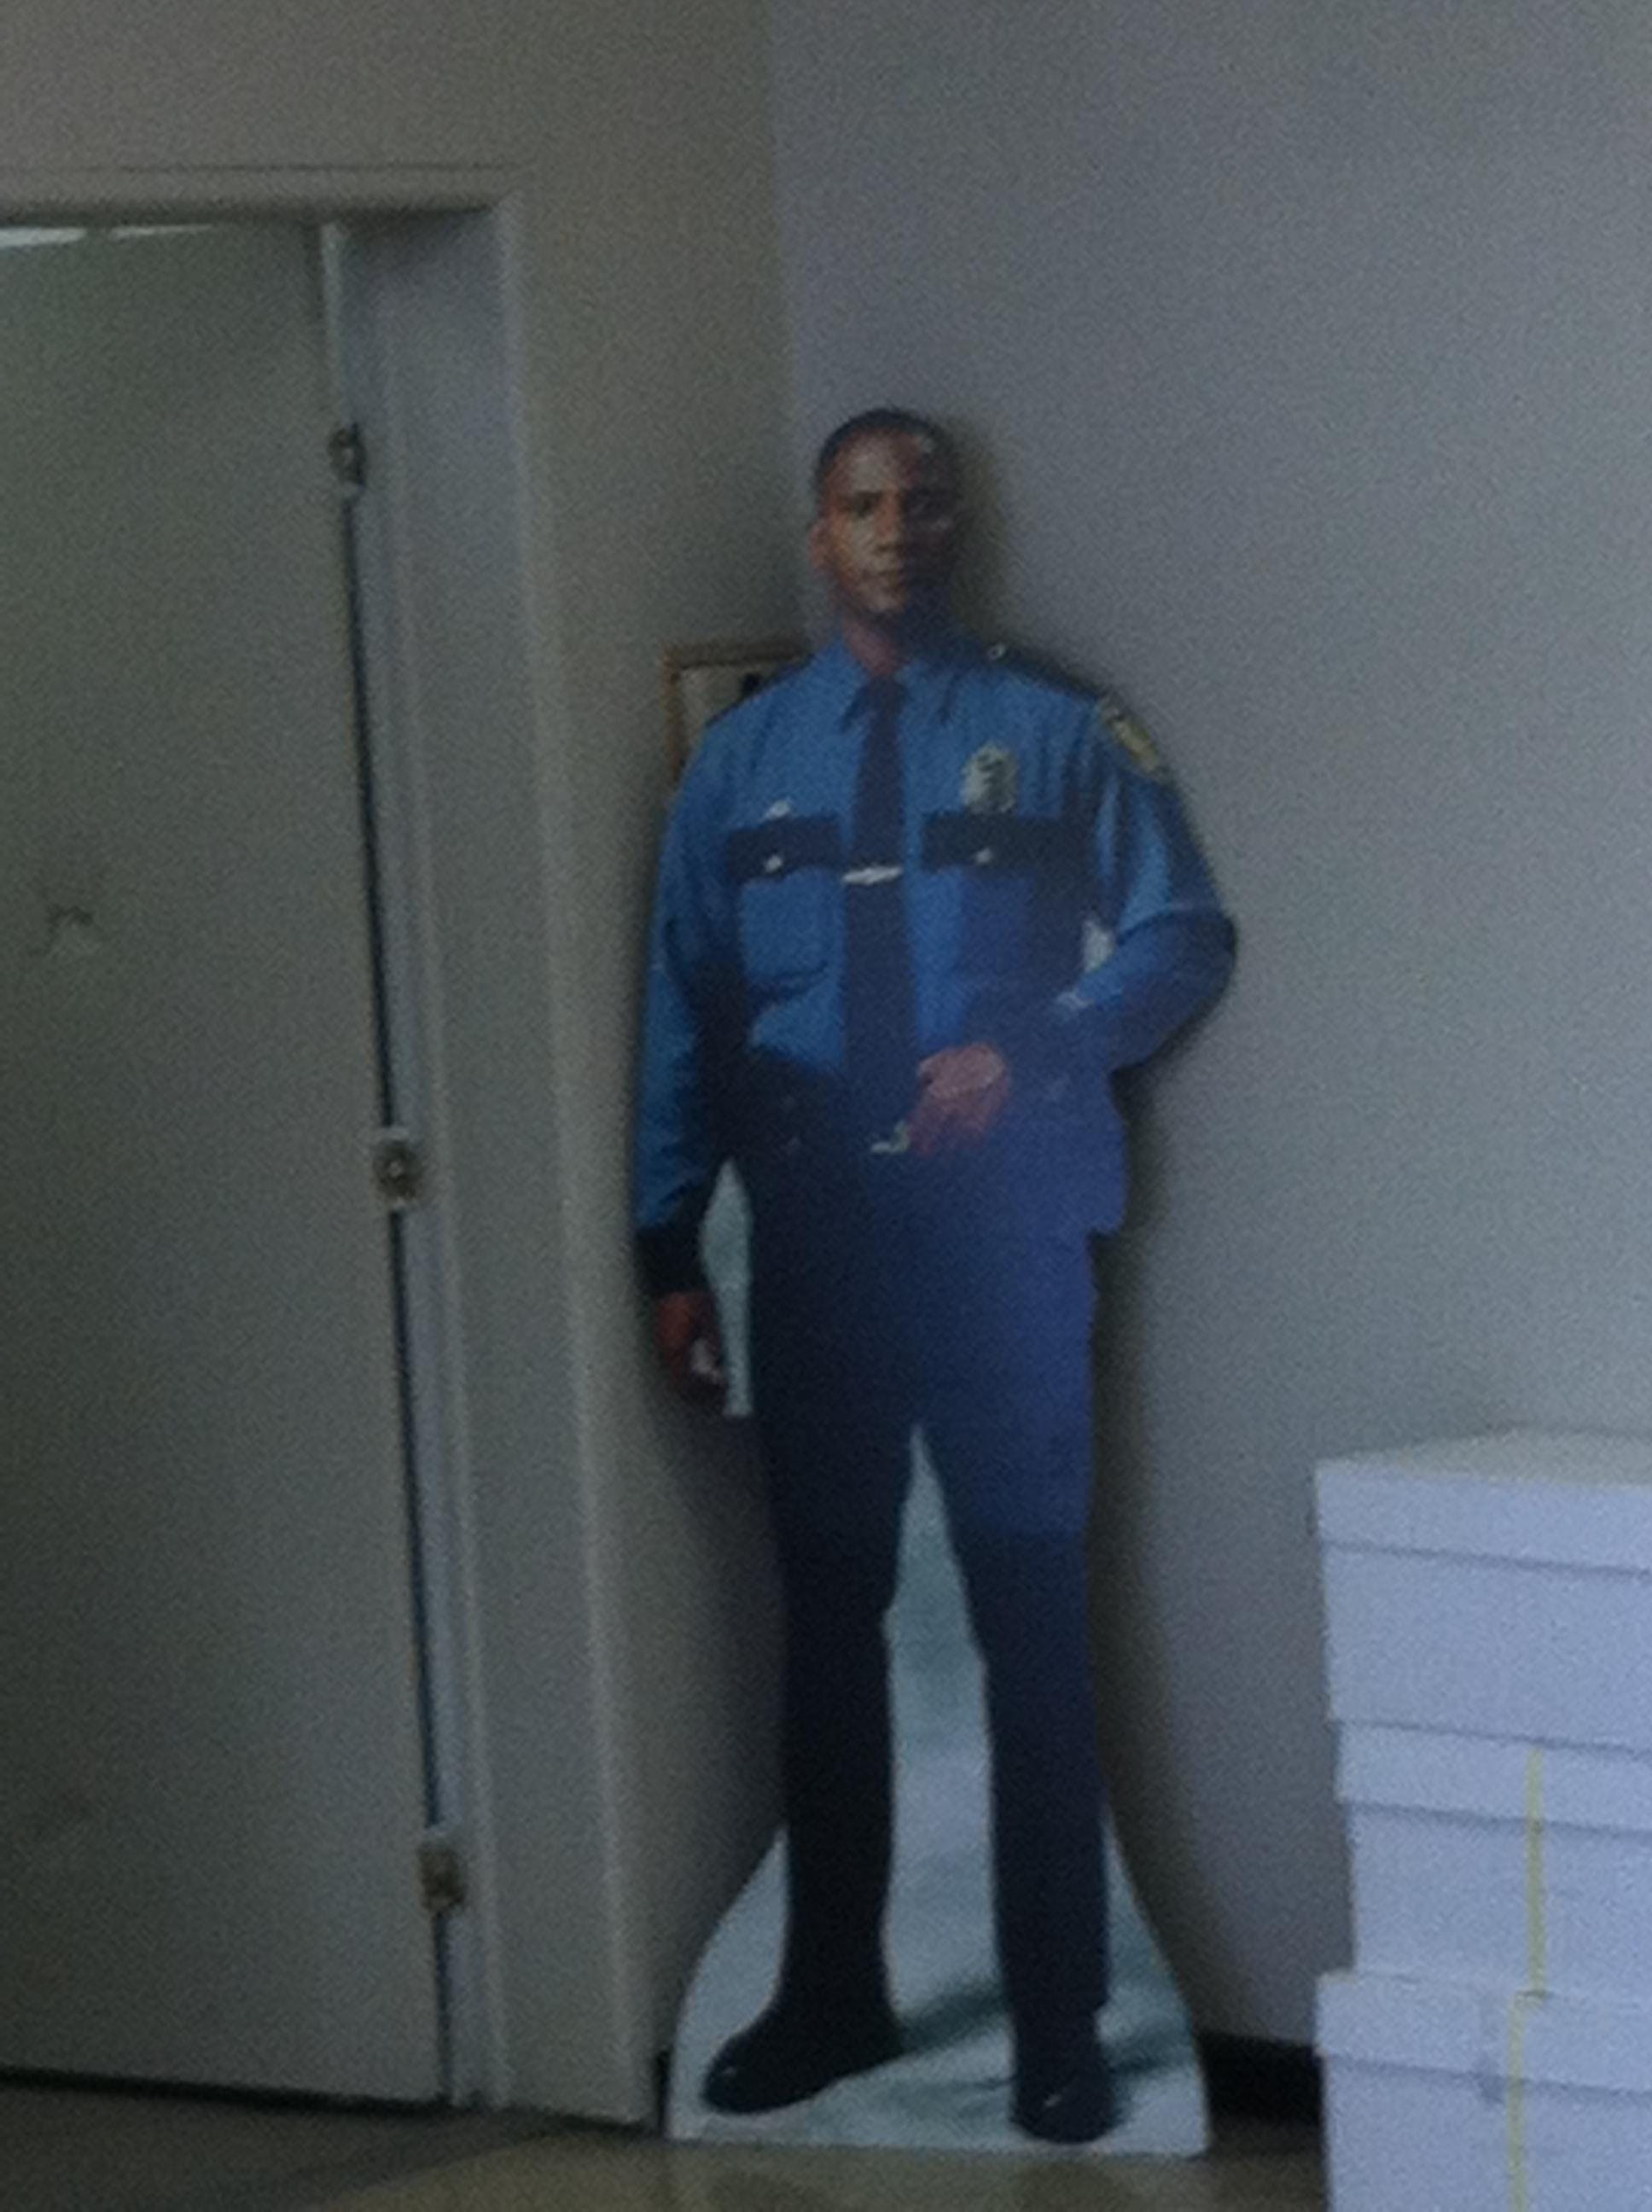 "Cardboard cut-out of a security guard illustrating Tugboat Logic's article ""9 Low-Budget Ways to Get More Secure"""